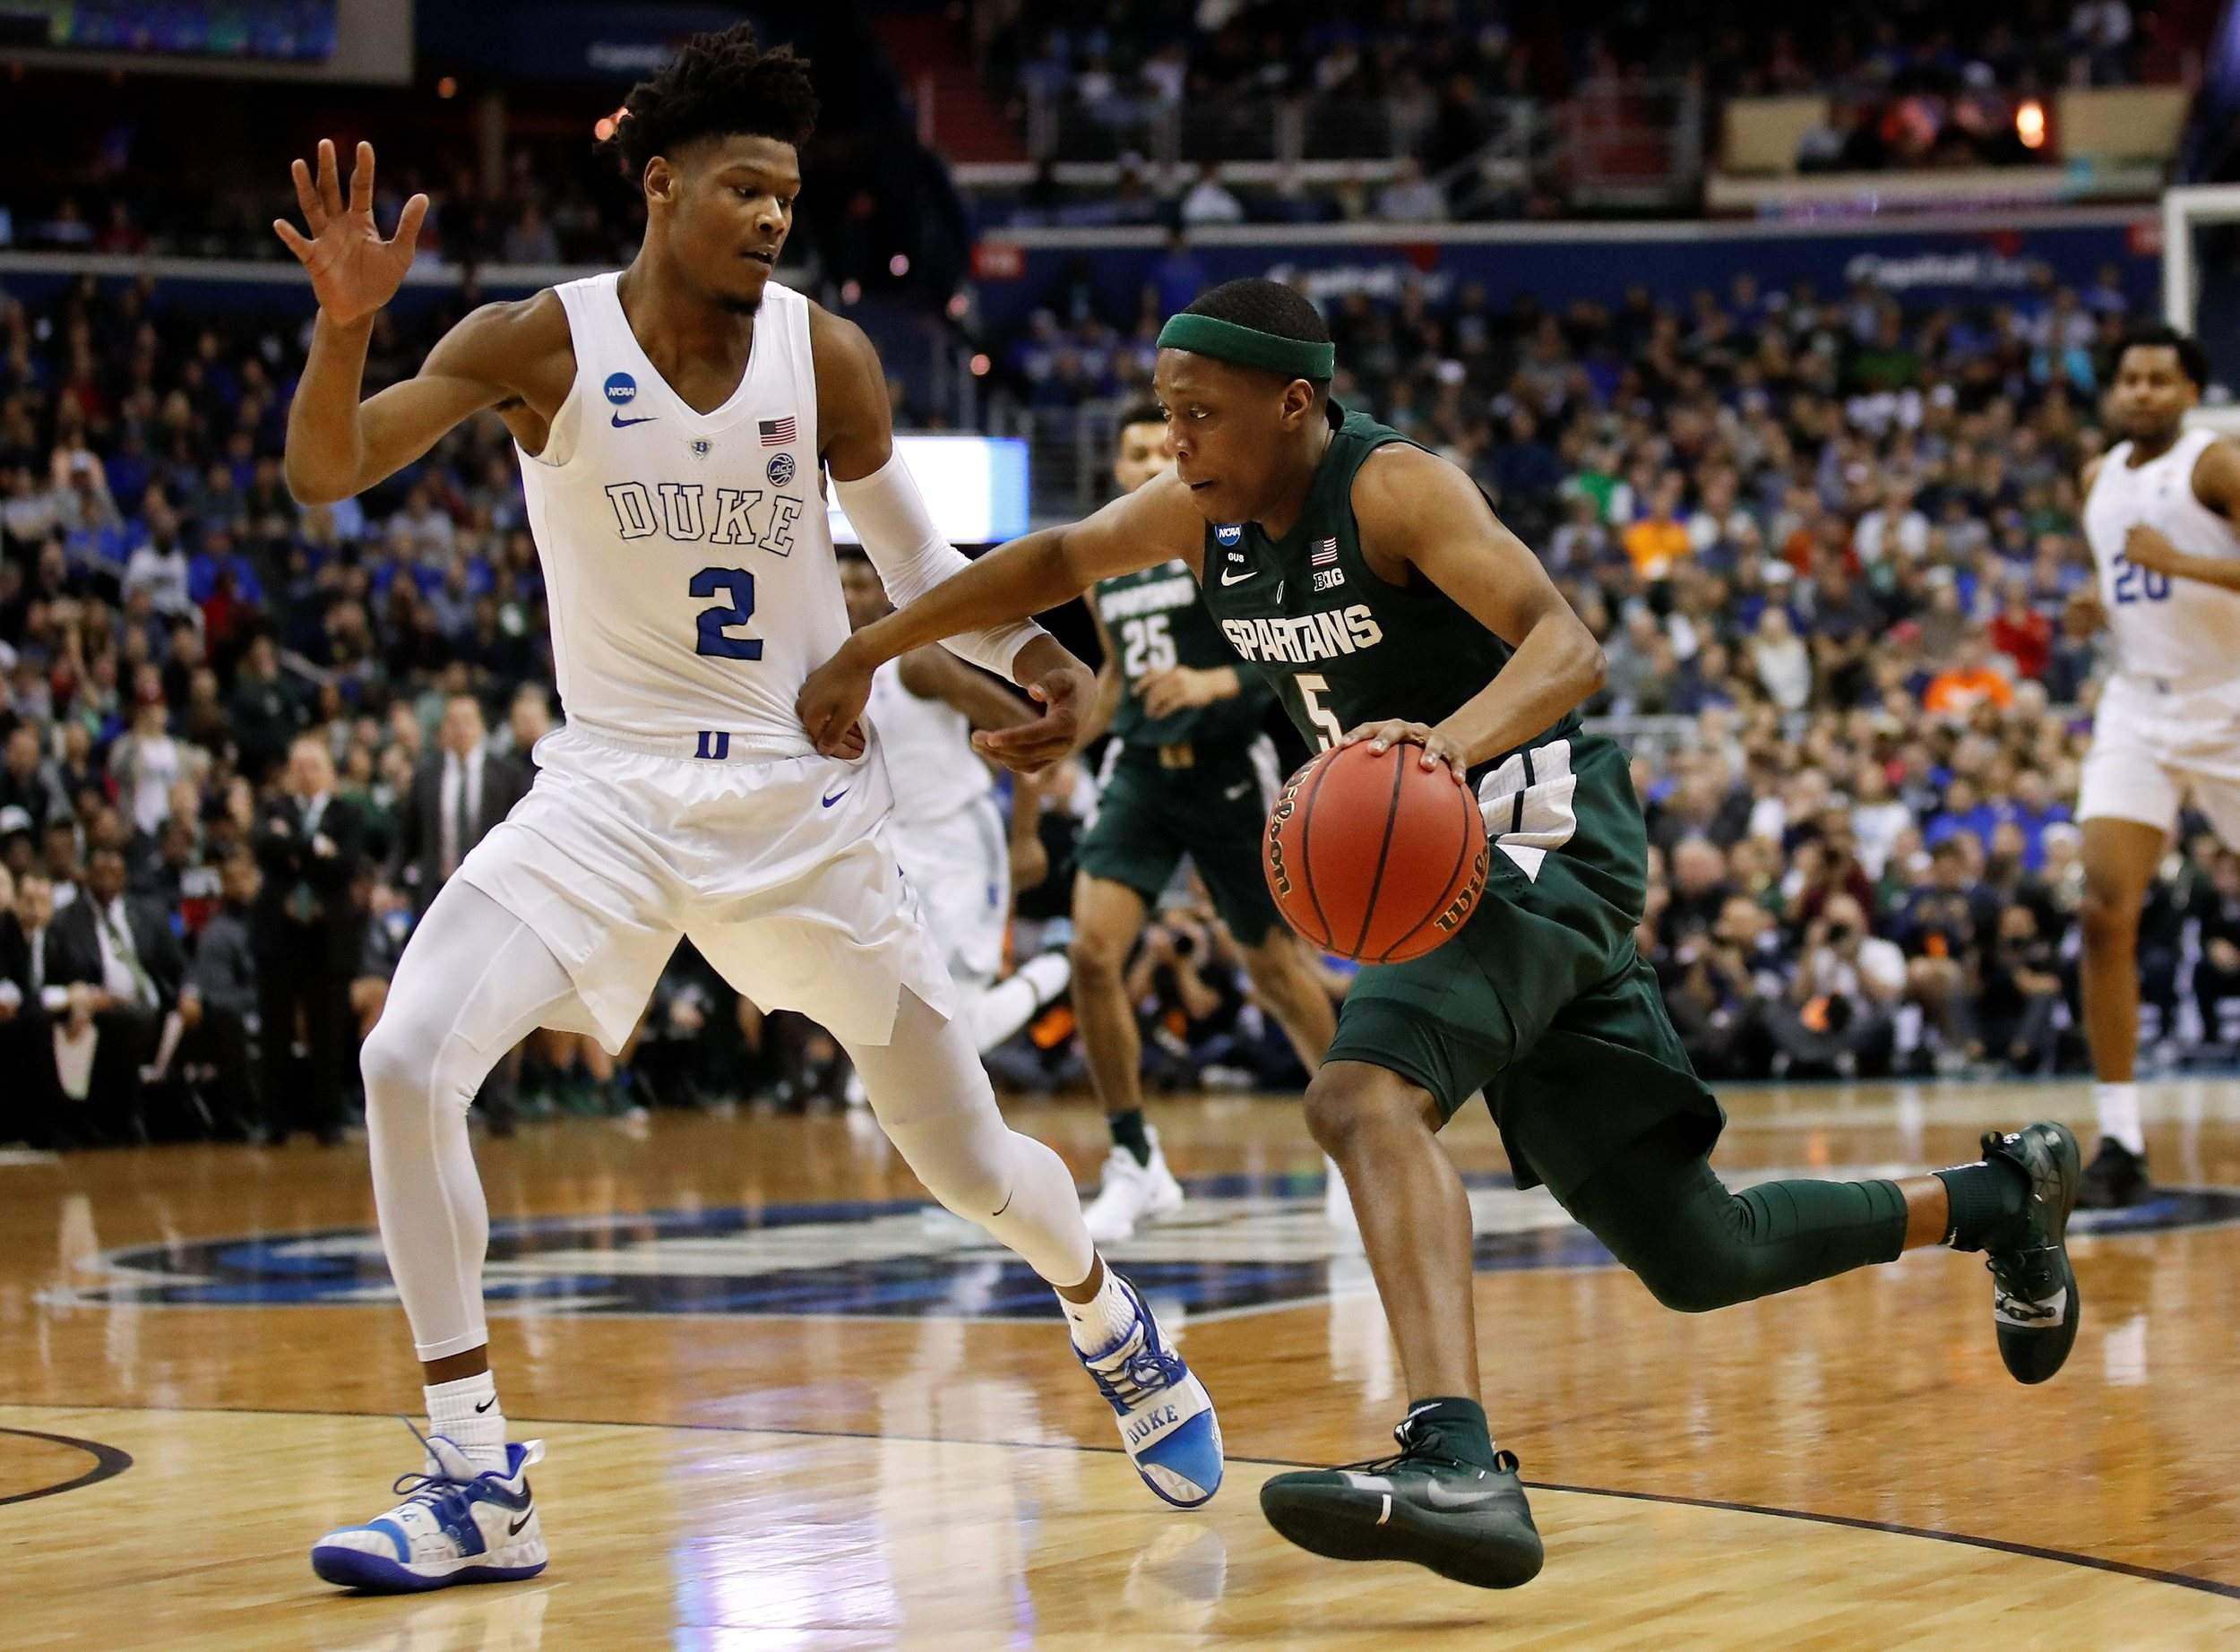 ef6fef2a8f47 Michigan State guard Cassius Winston drives past Duke forward Cam Reddish  during the first half of the East Regional final NCAA Tournament game in ...